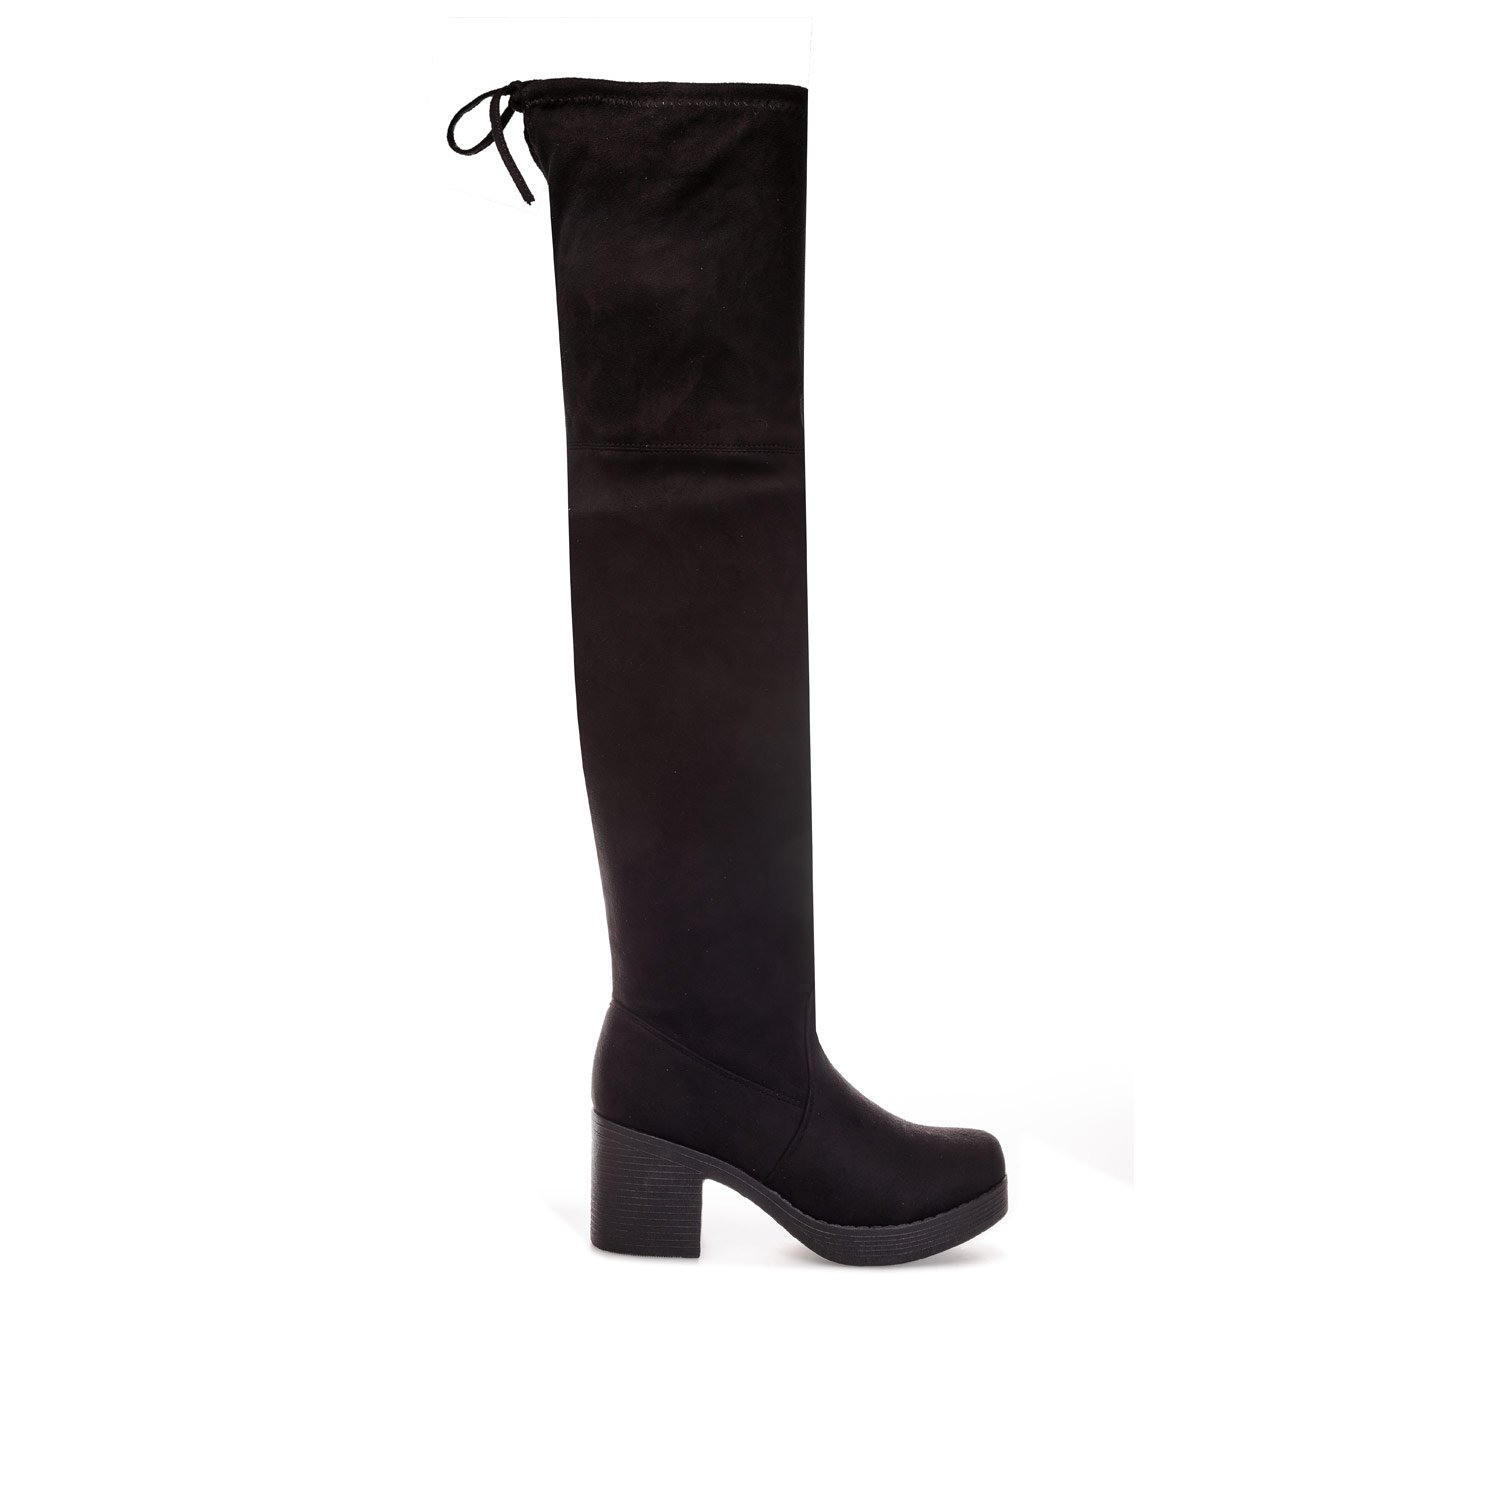 e6e3467c461 Truffle Collection Womens Womens Block Heel Over The Knee Boots in ...